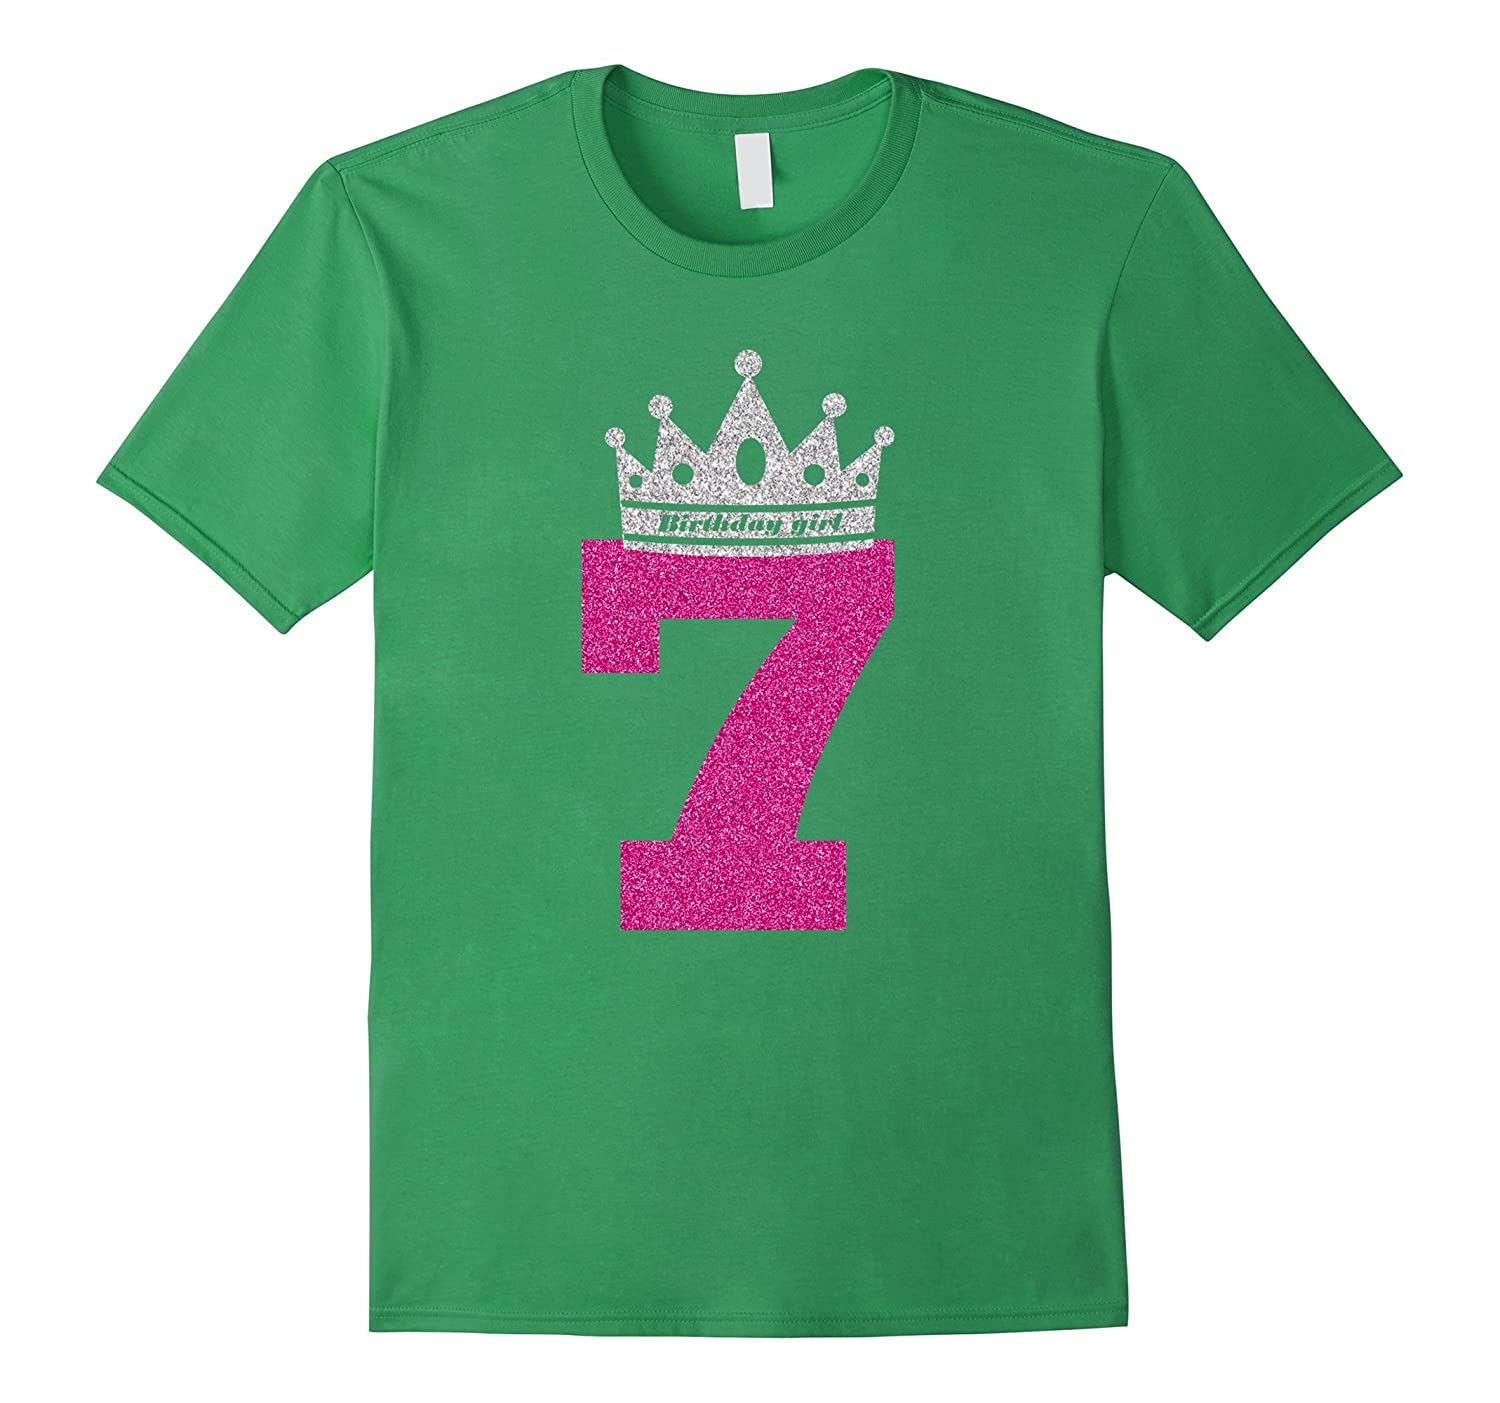 7th Birthday Shirts For Girls Princess Crown T Shirt Art